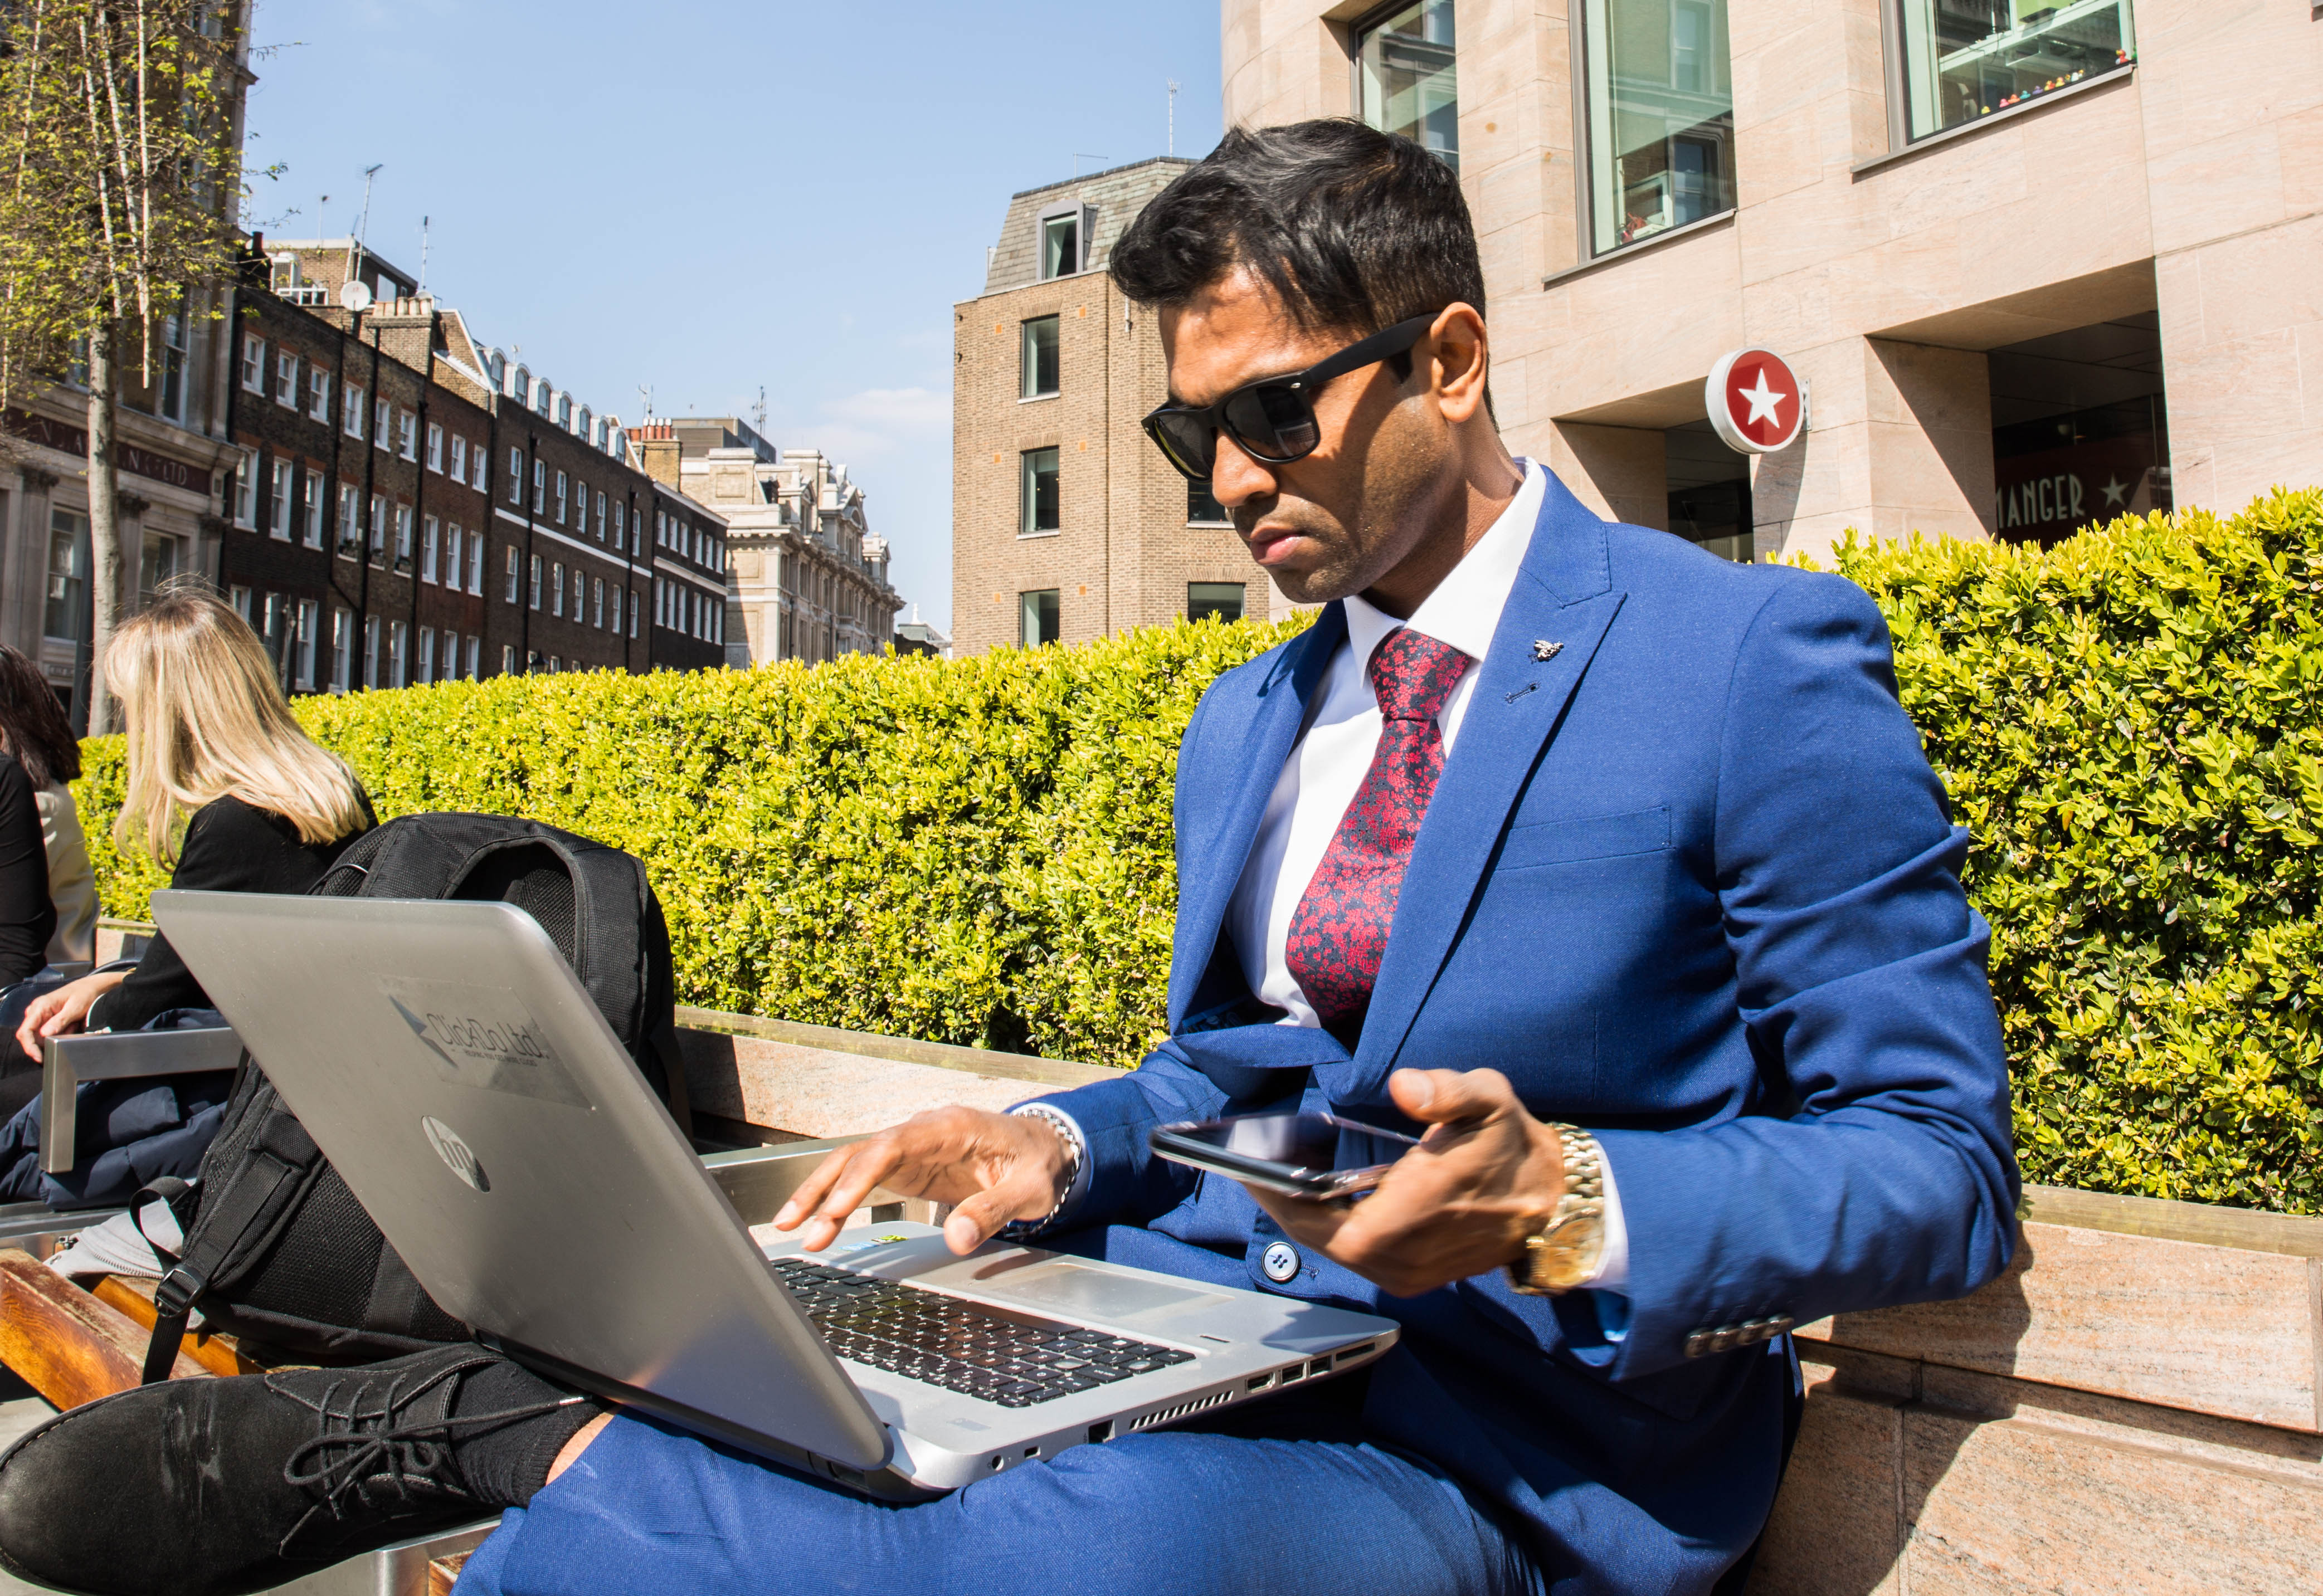 Fernando the London SEO Consultant working remotely doing SEO work online